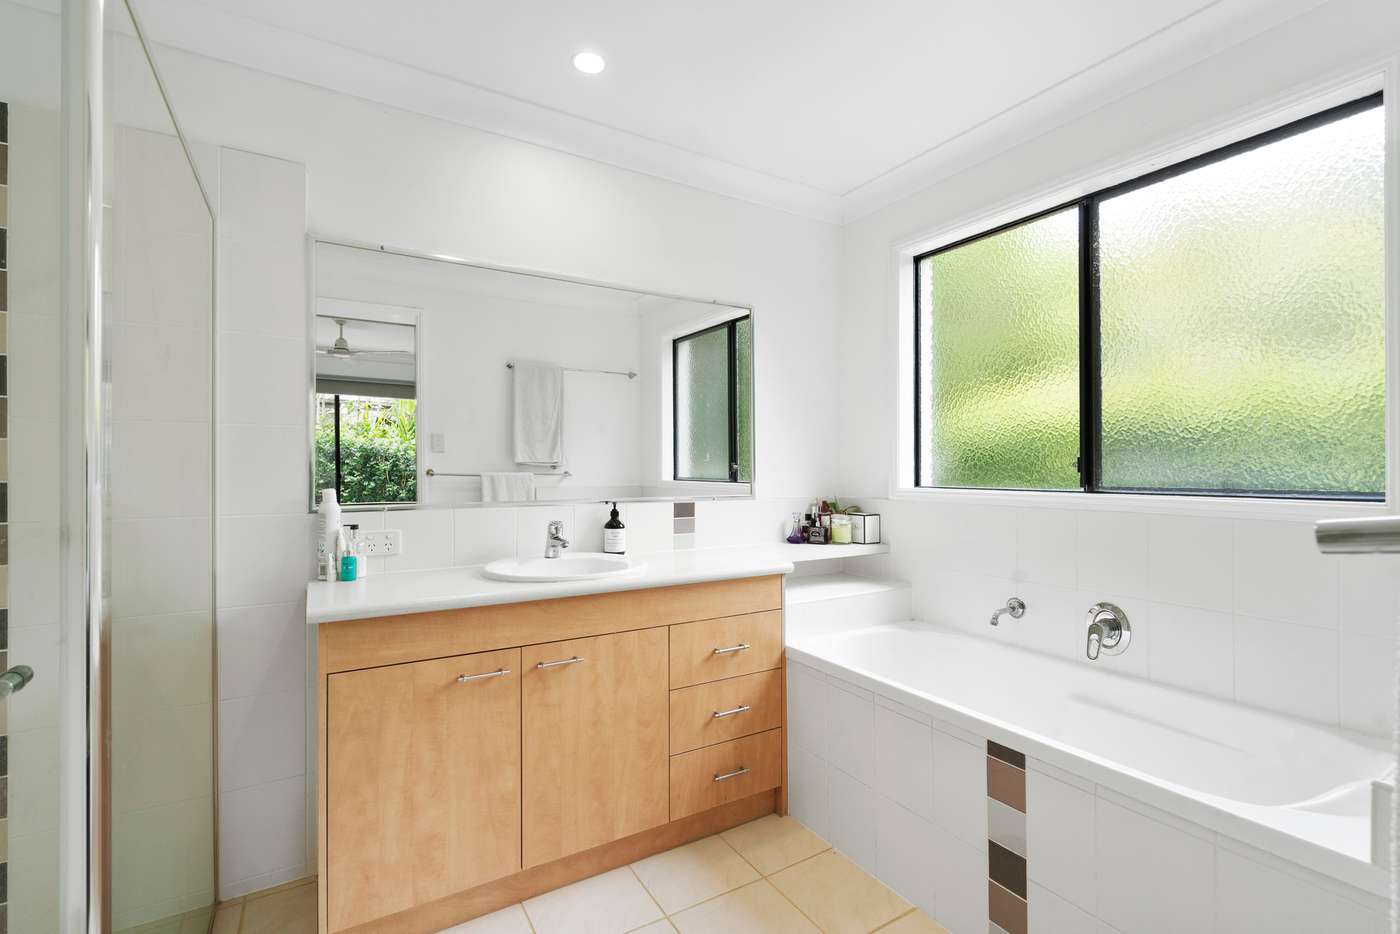 Fifth view of Homely house listing, 11 Riviera Crescent, Peregian Springs QLD 4573